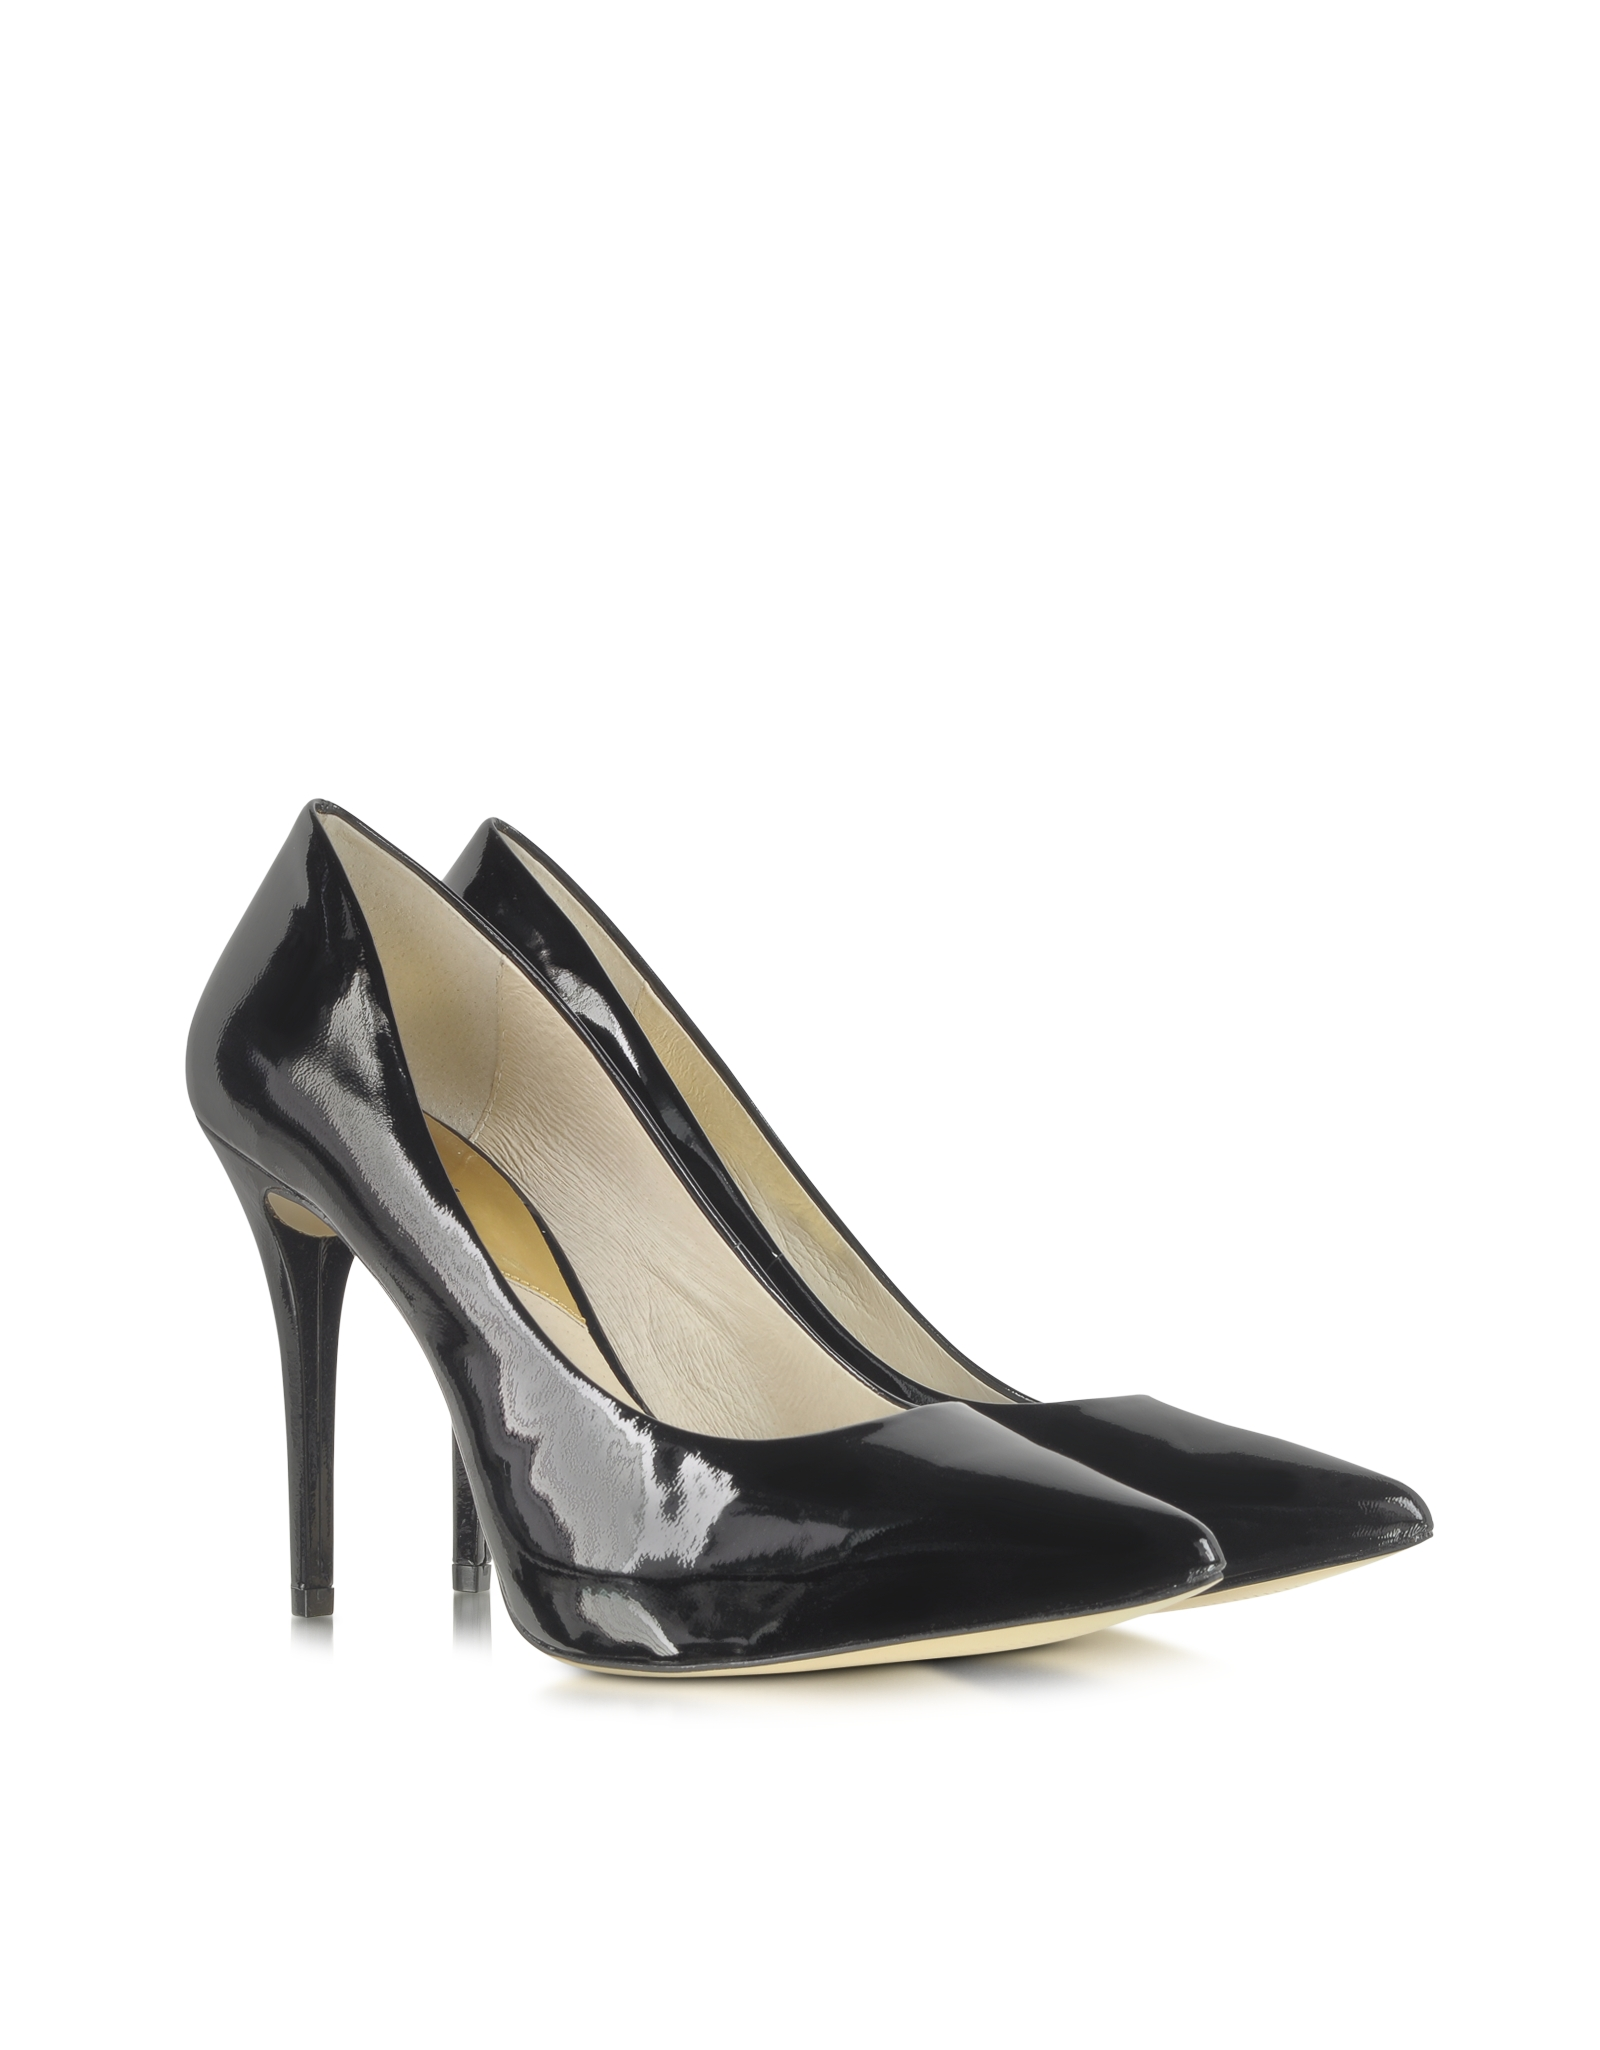 e9e7683a310d Lyst - Michael Kors Joselle Black Patent Leather Pointedtoe Pump in ...